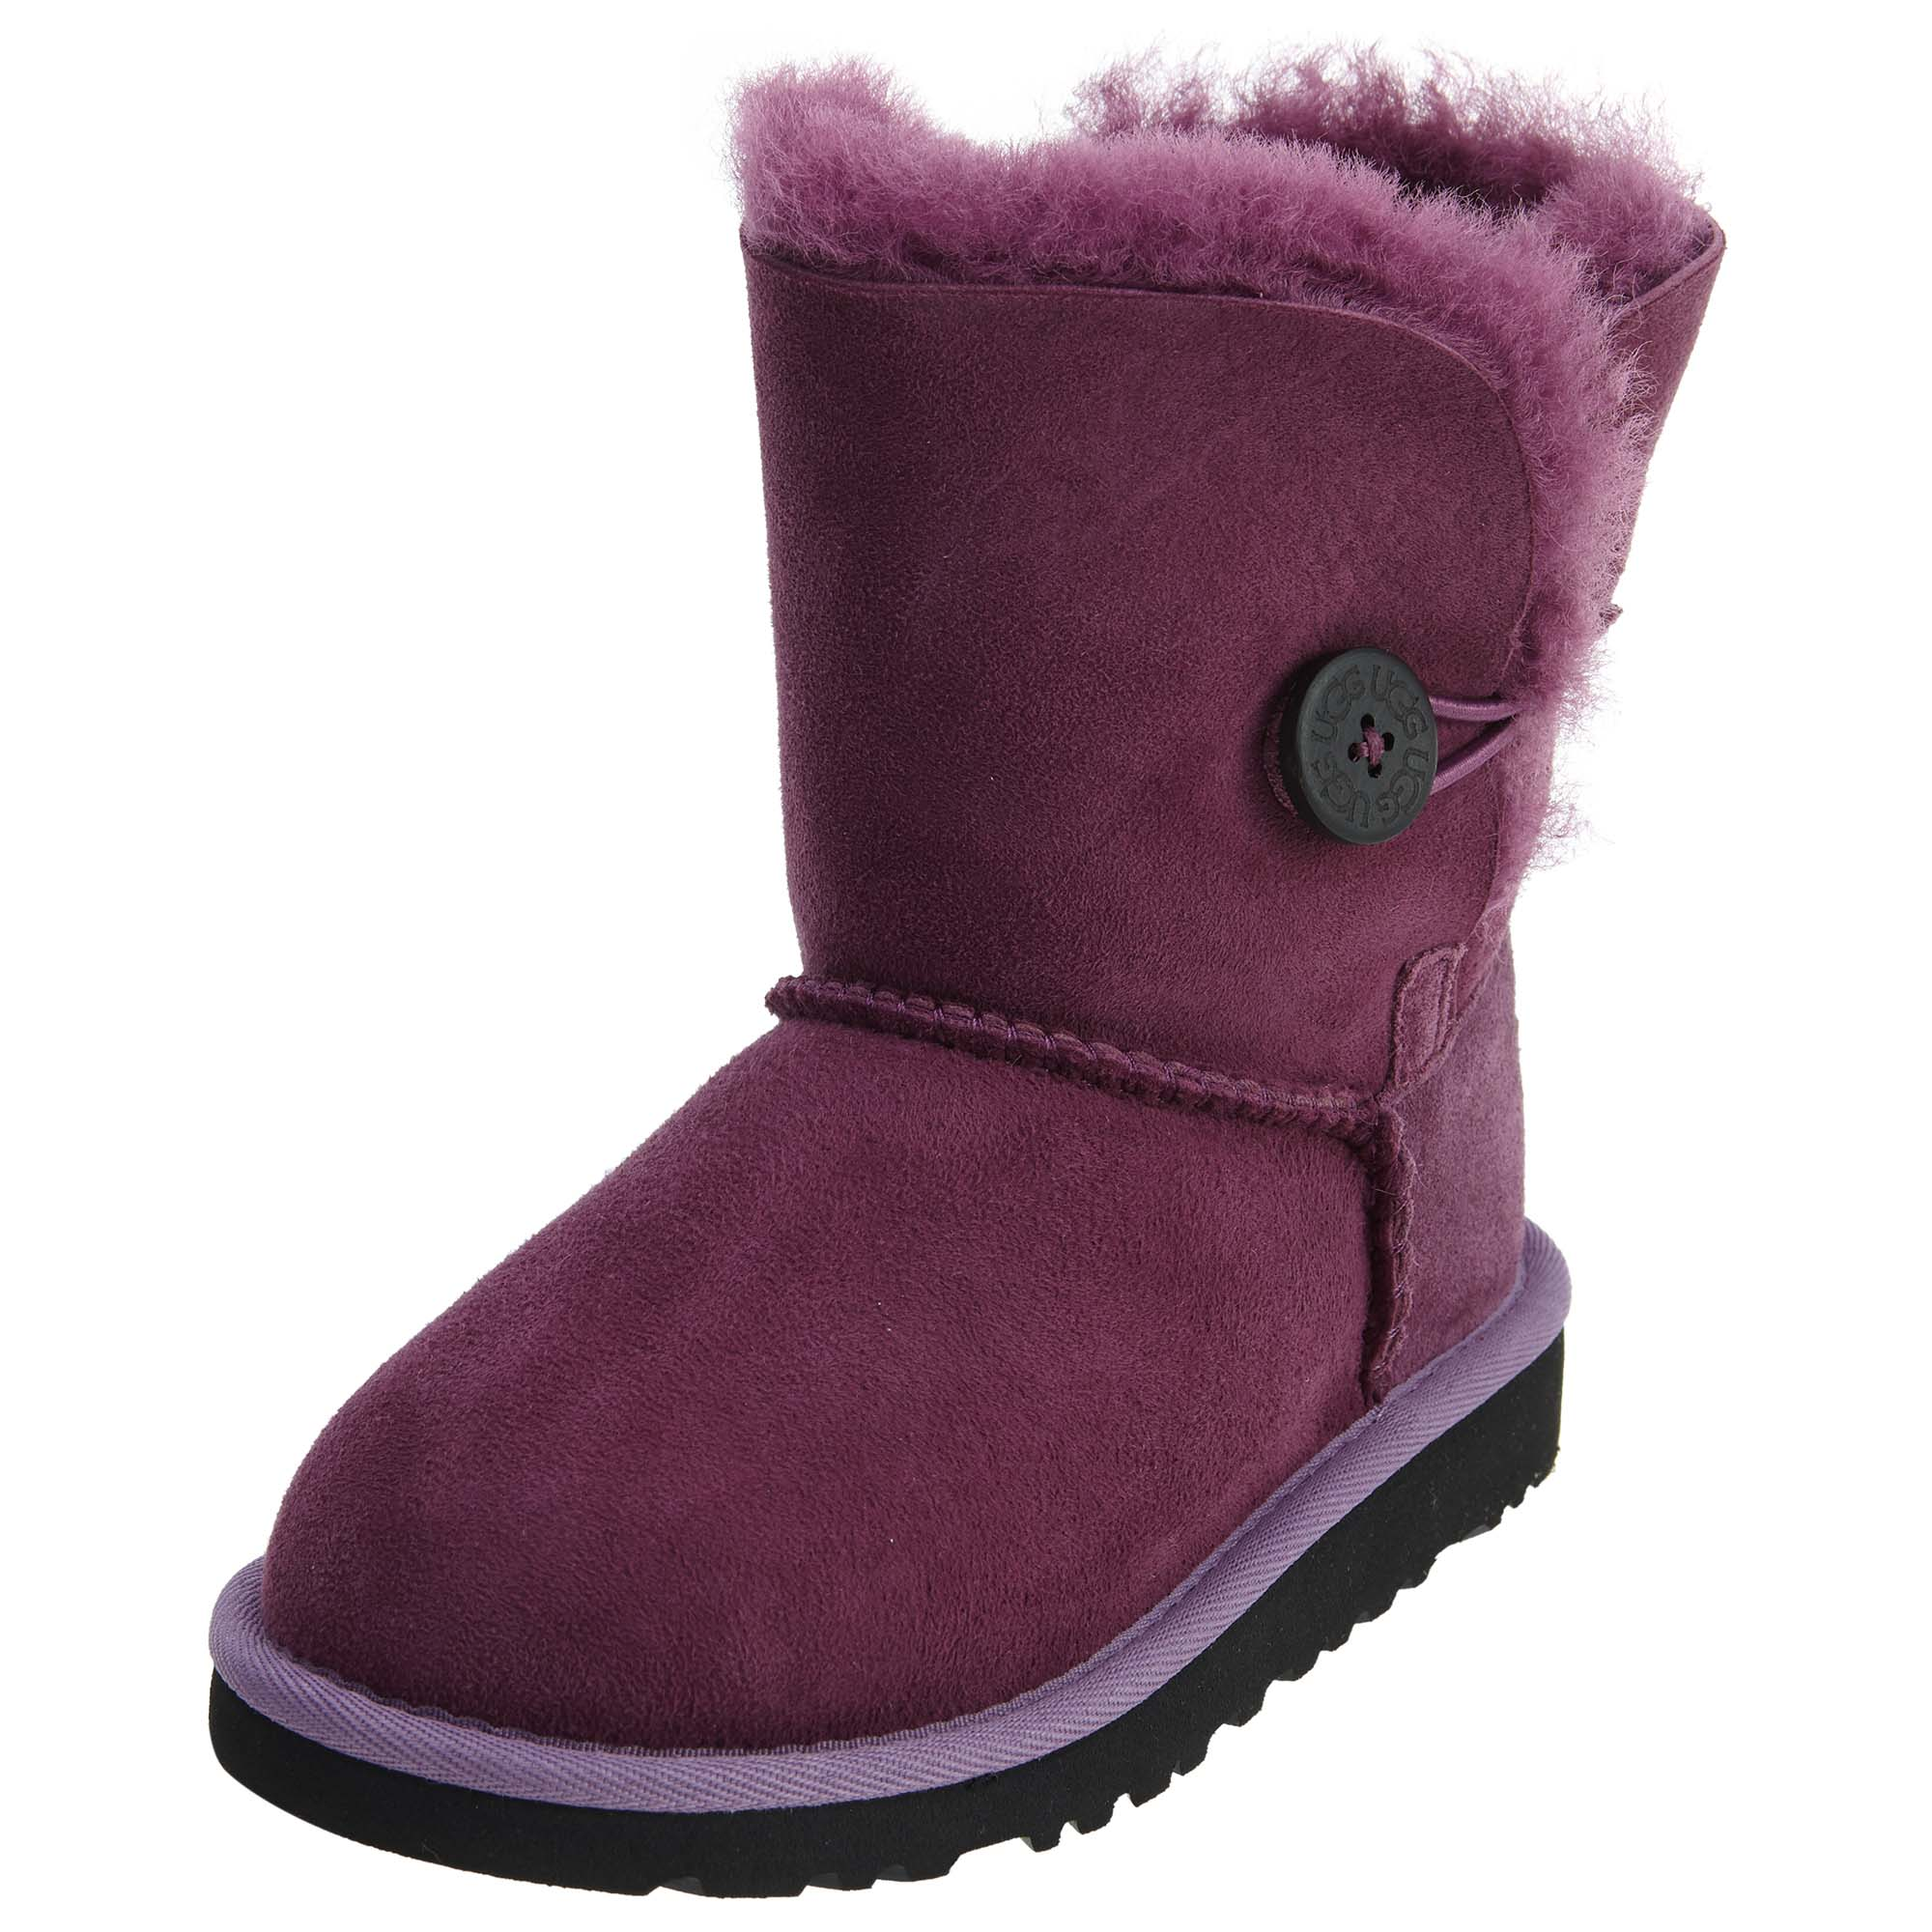 Ugg Australia Bailey Button Boot Toddlers Style : 5991t